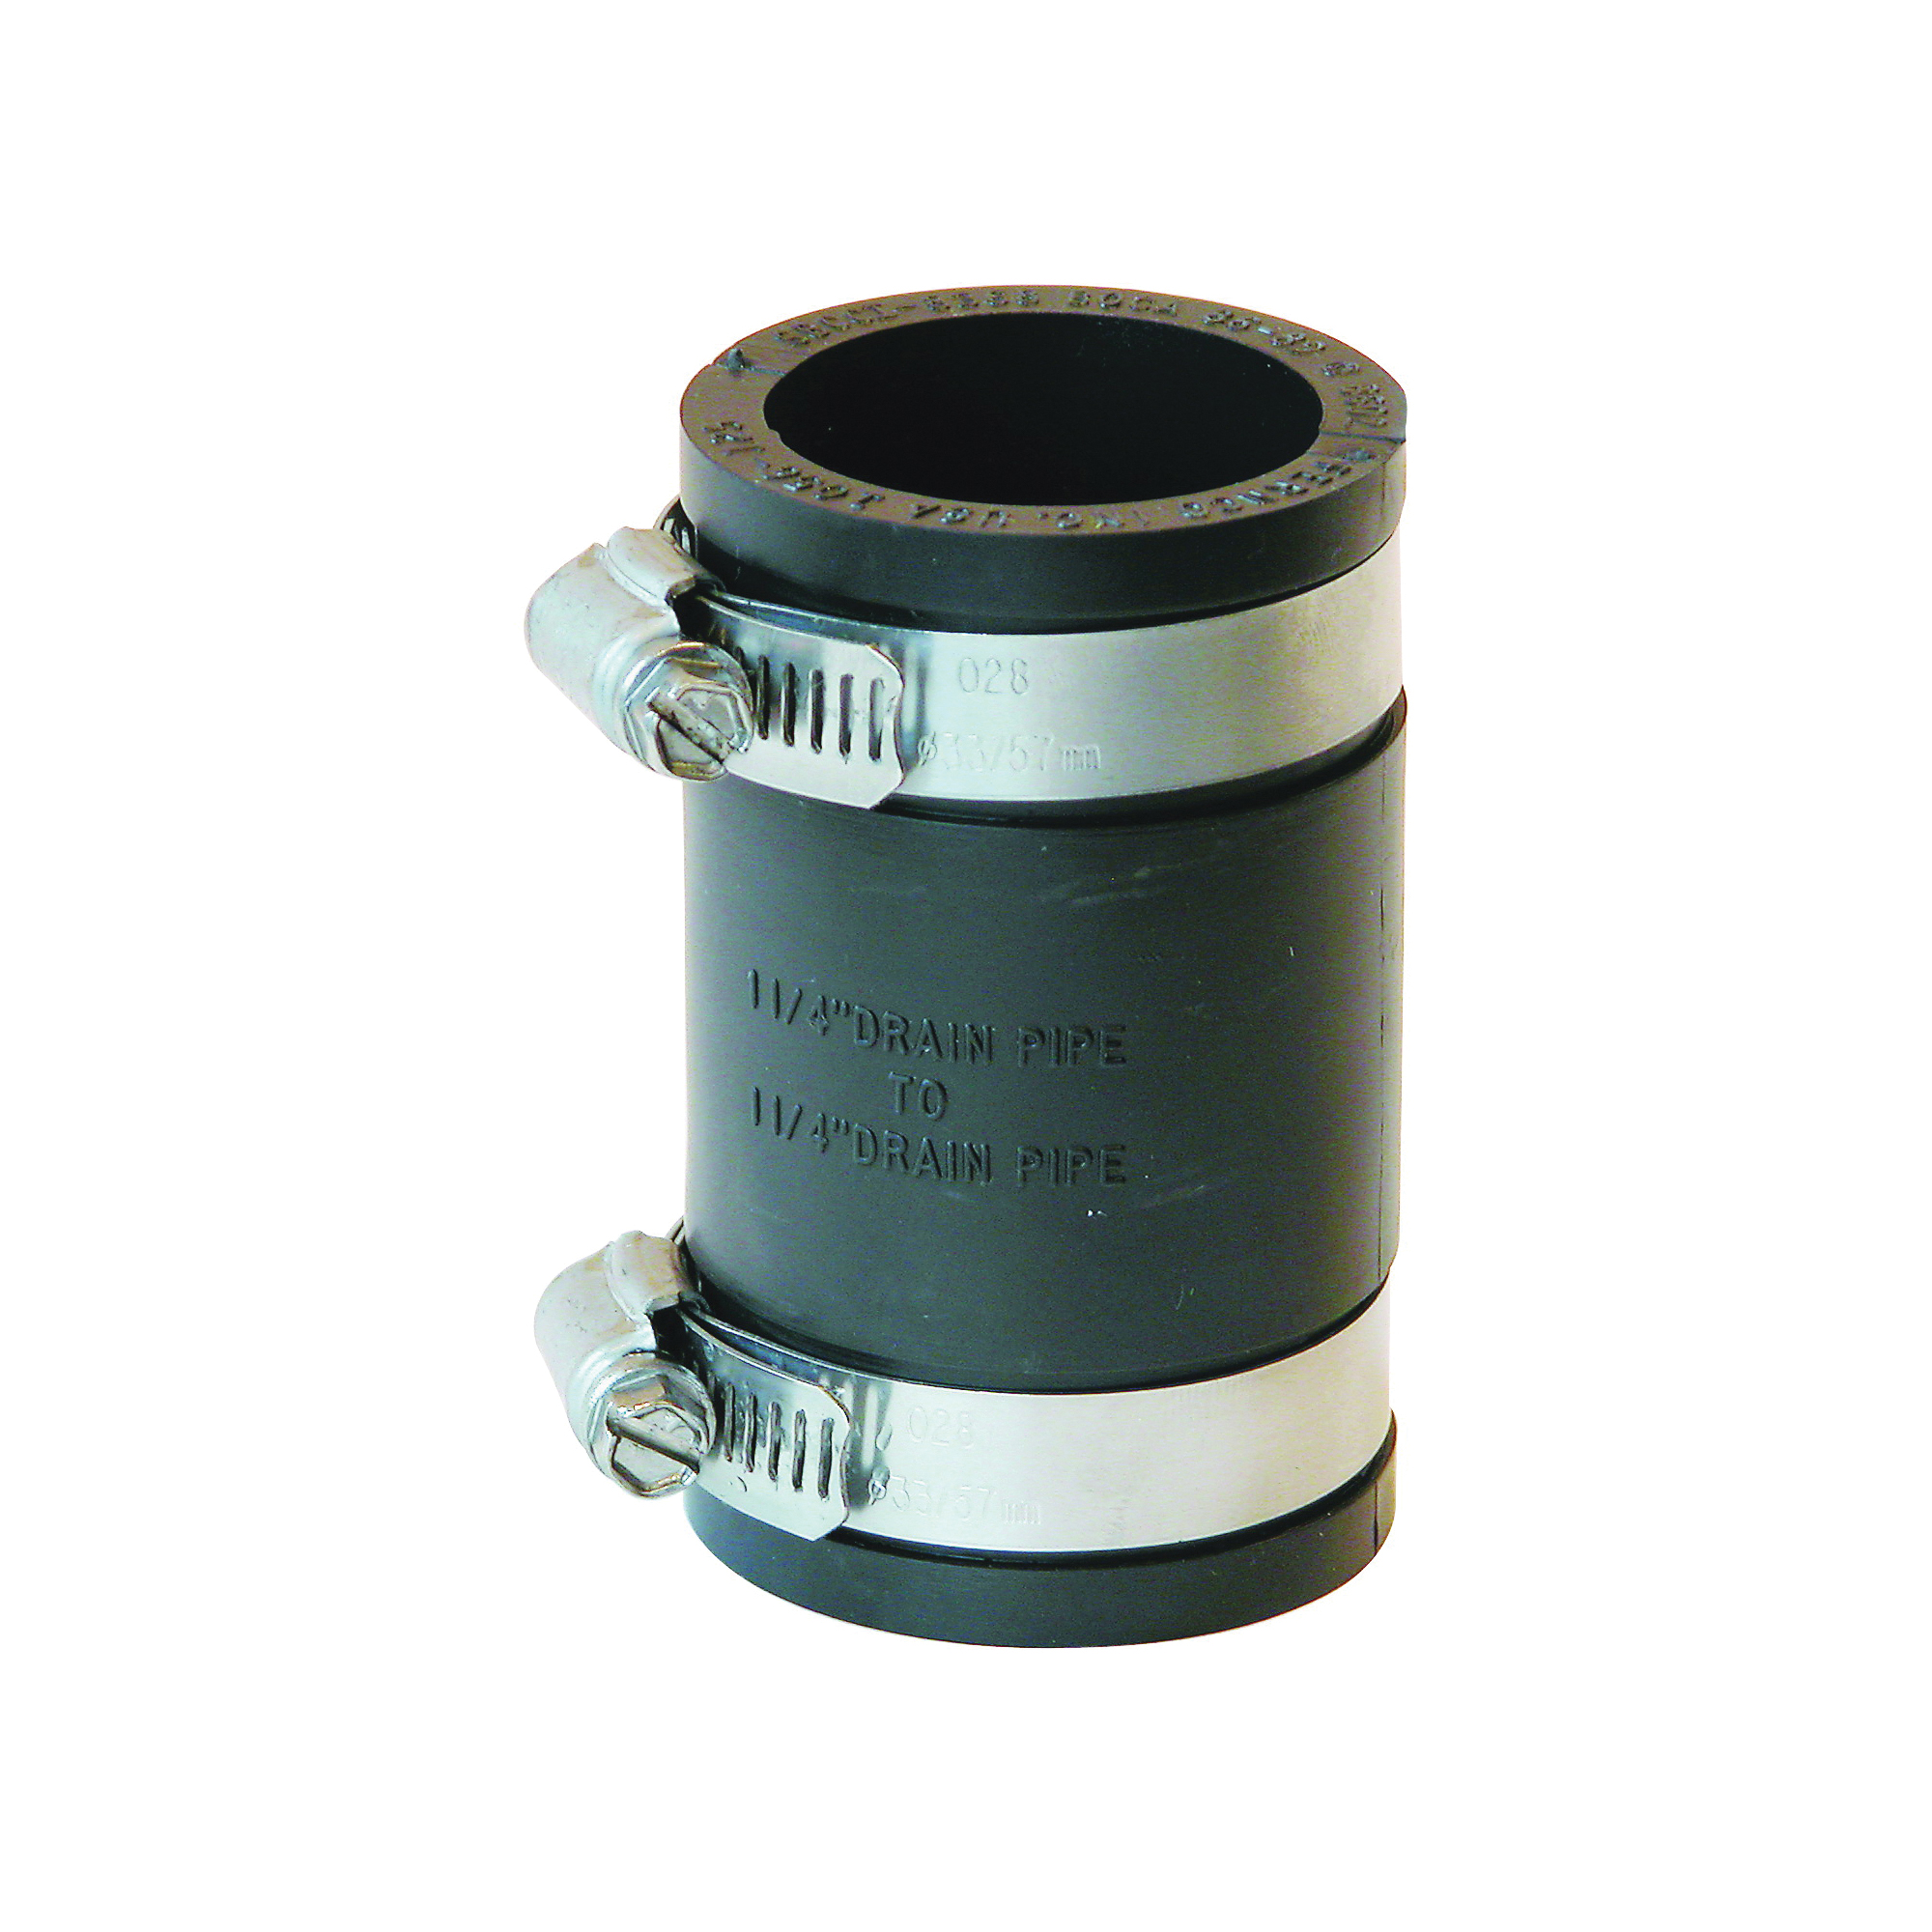 Picture of FERNCO P1056-125 Flexible Pipe Coupling, 1-1/4 in, PVC, Black, 4.3 psi Pressure